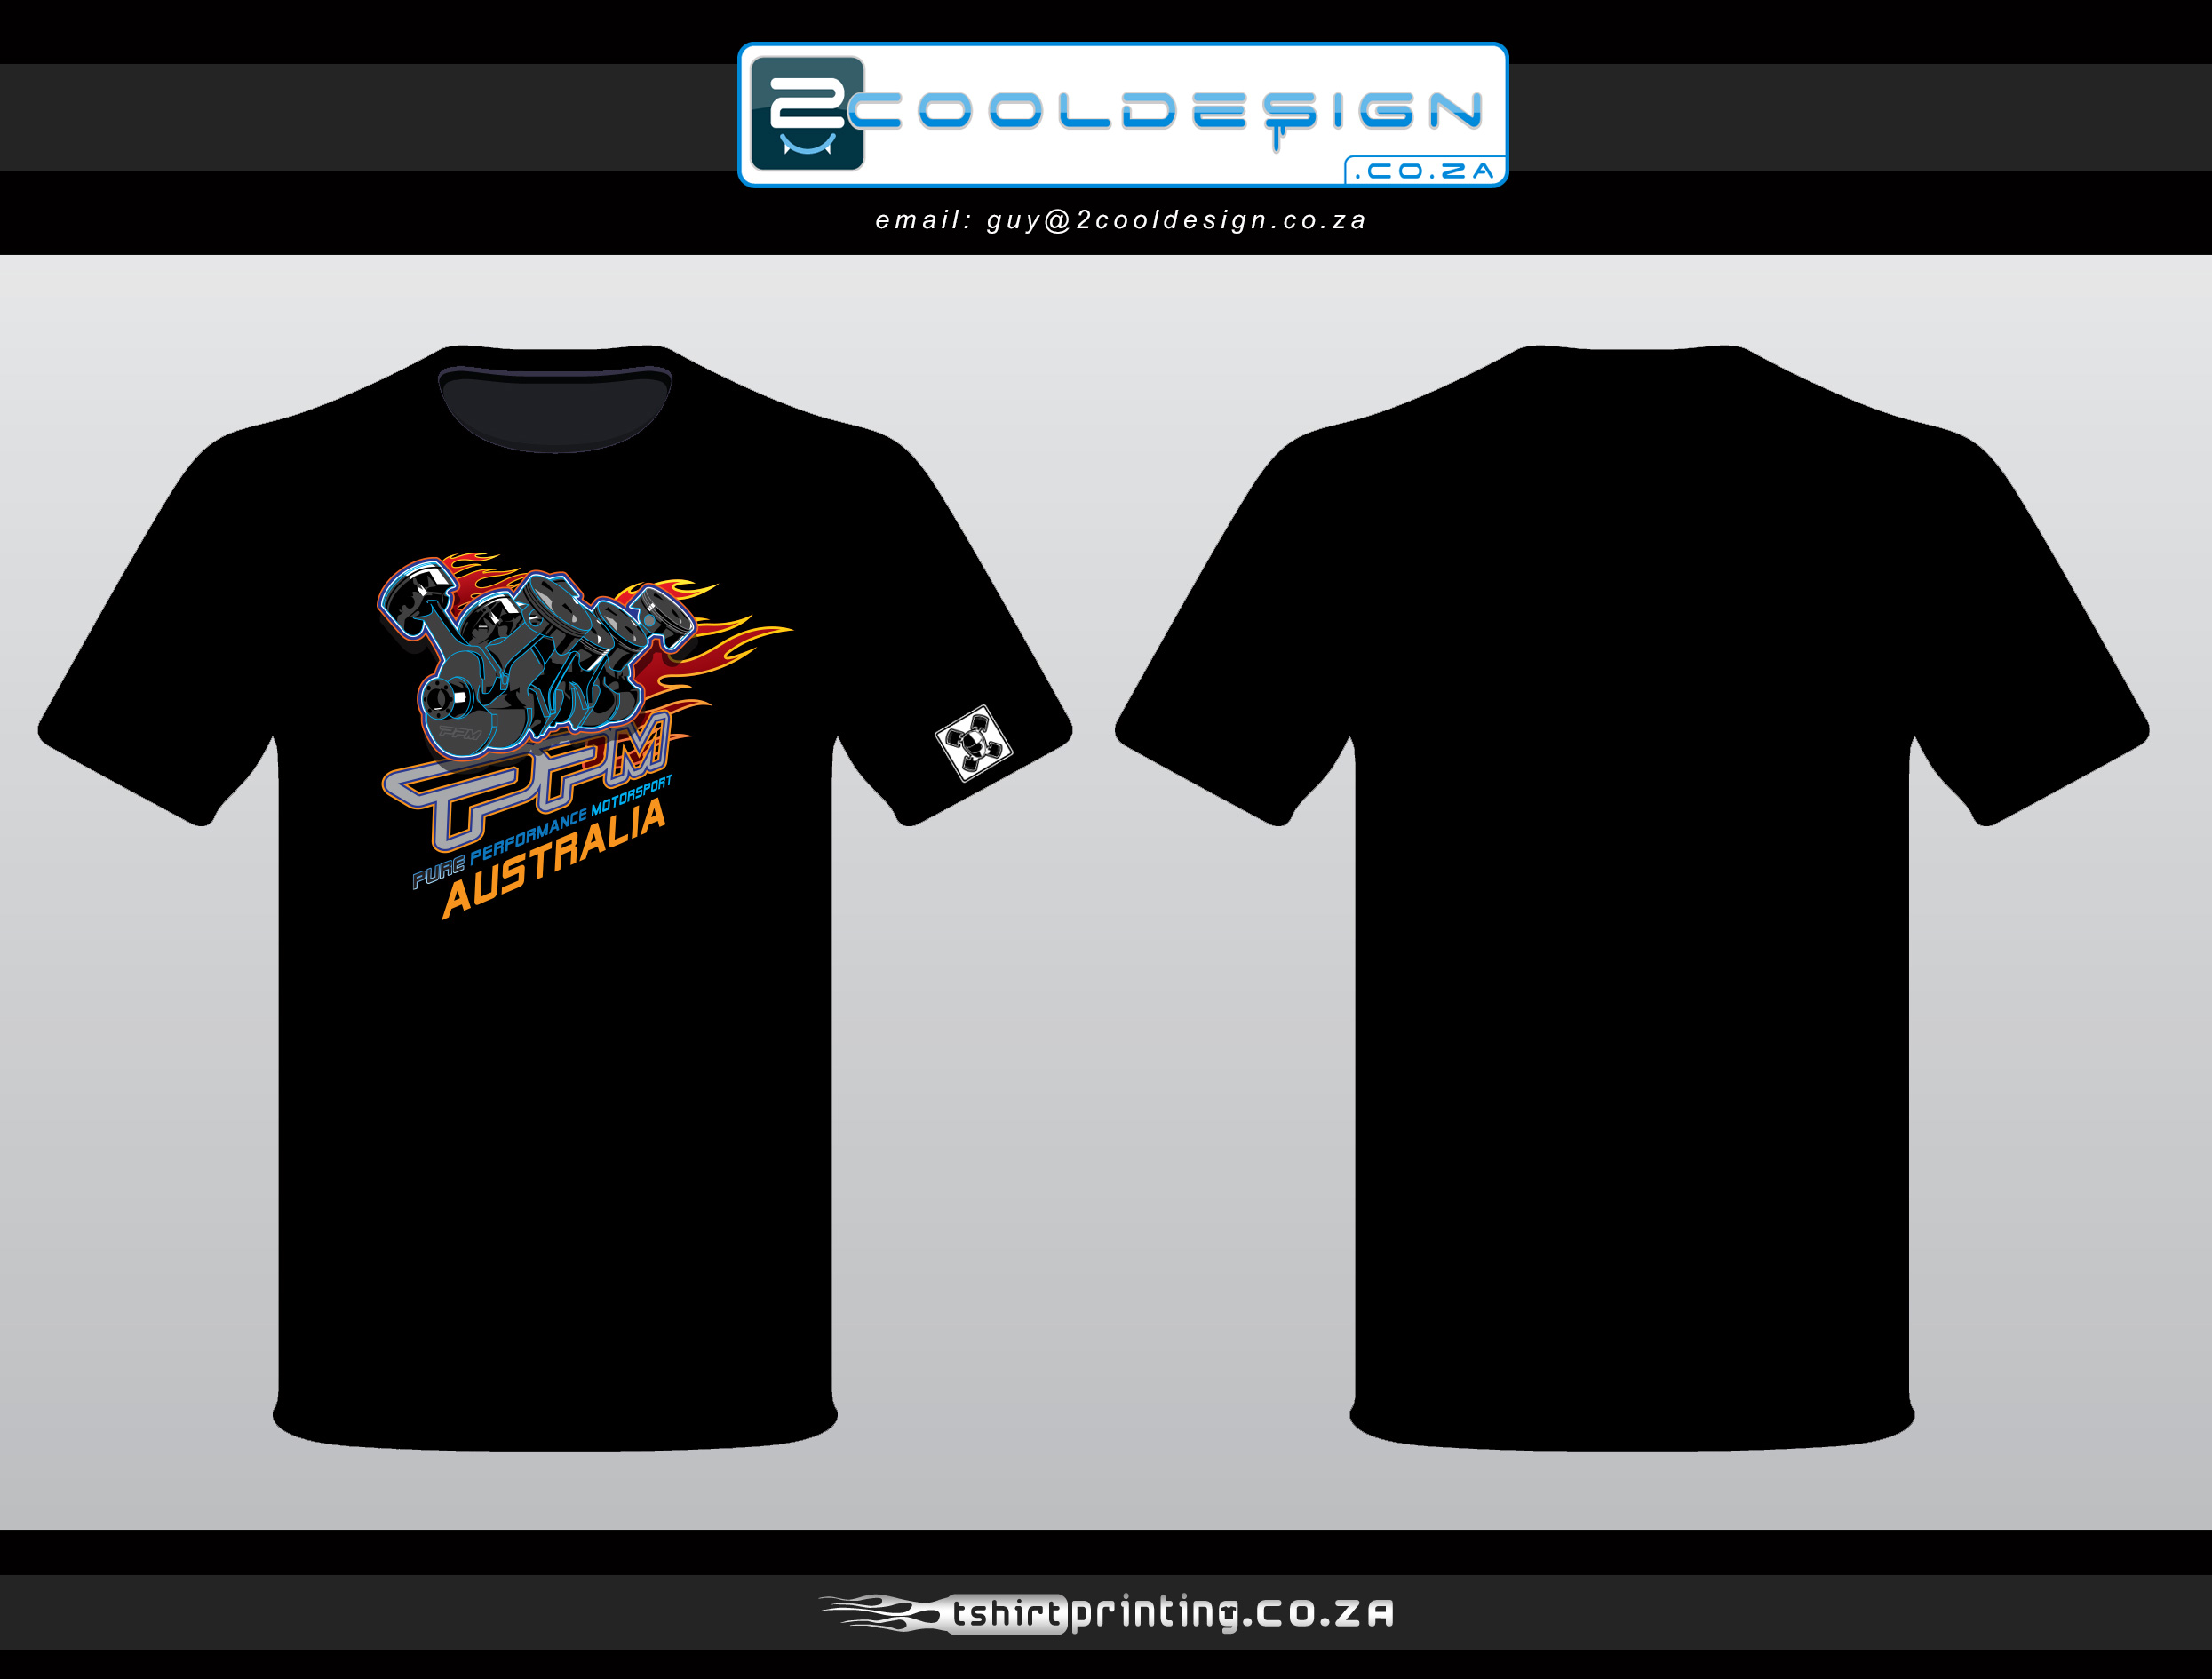 v8 motor piston tshirt design for ppm racing v8 tshirt - T Shirt Logo Design Ideas